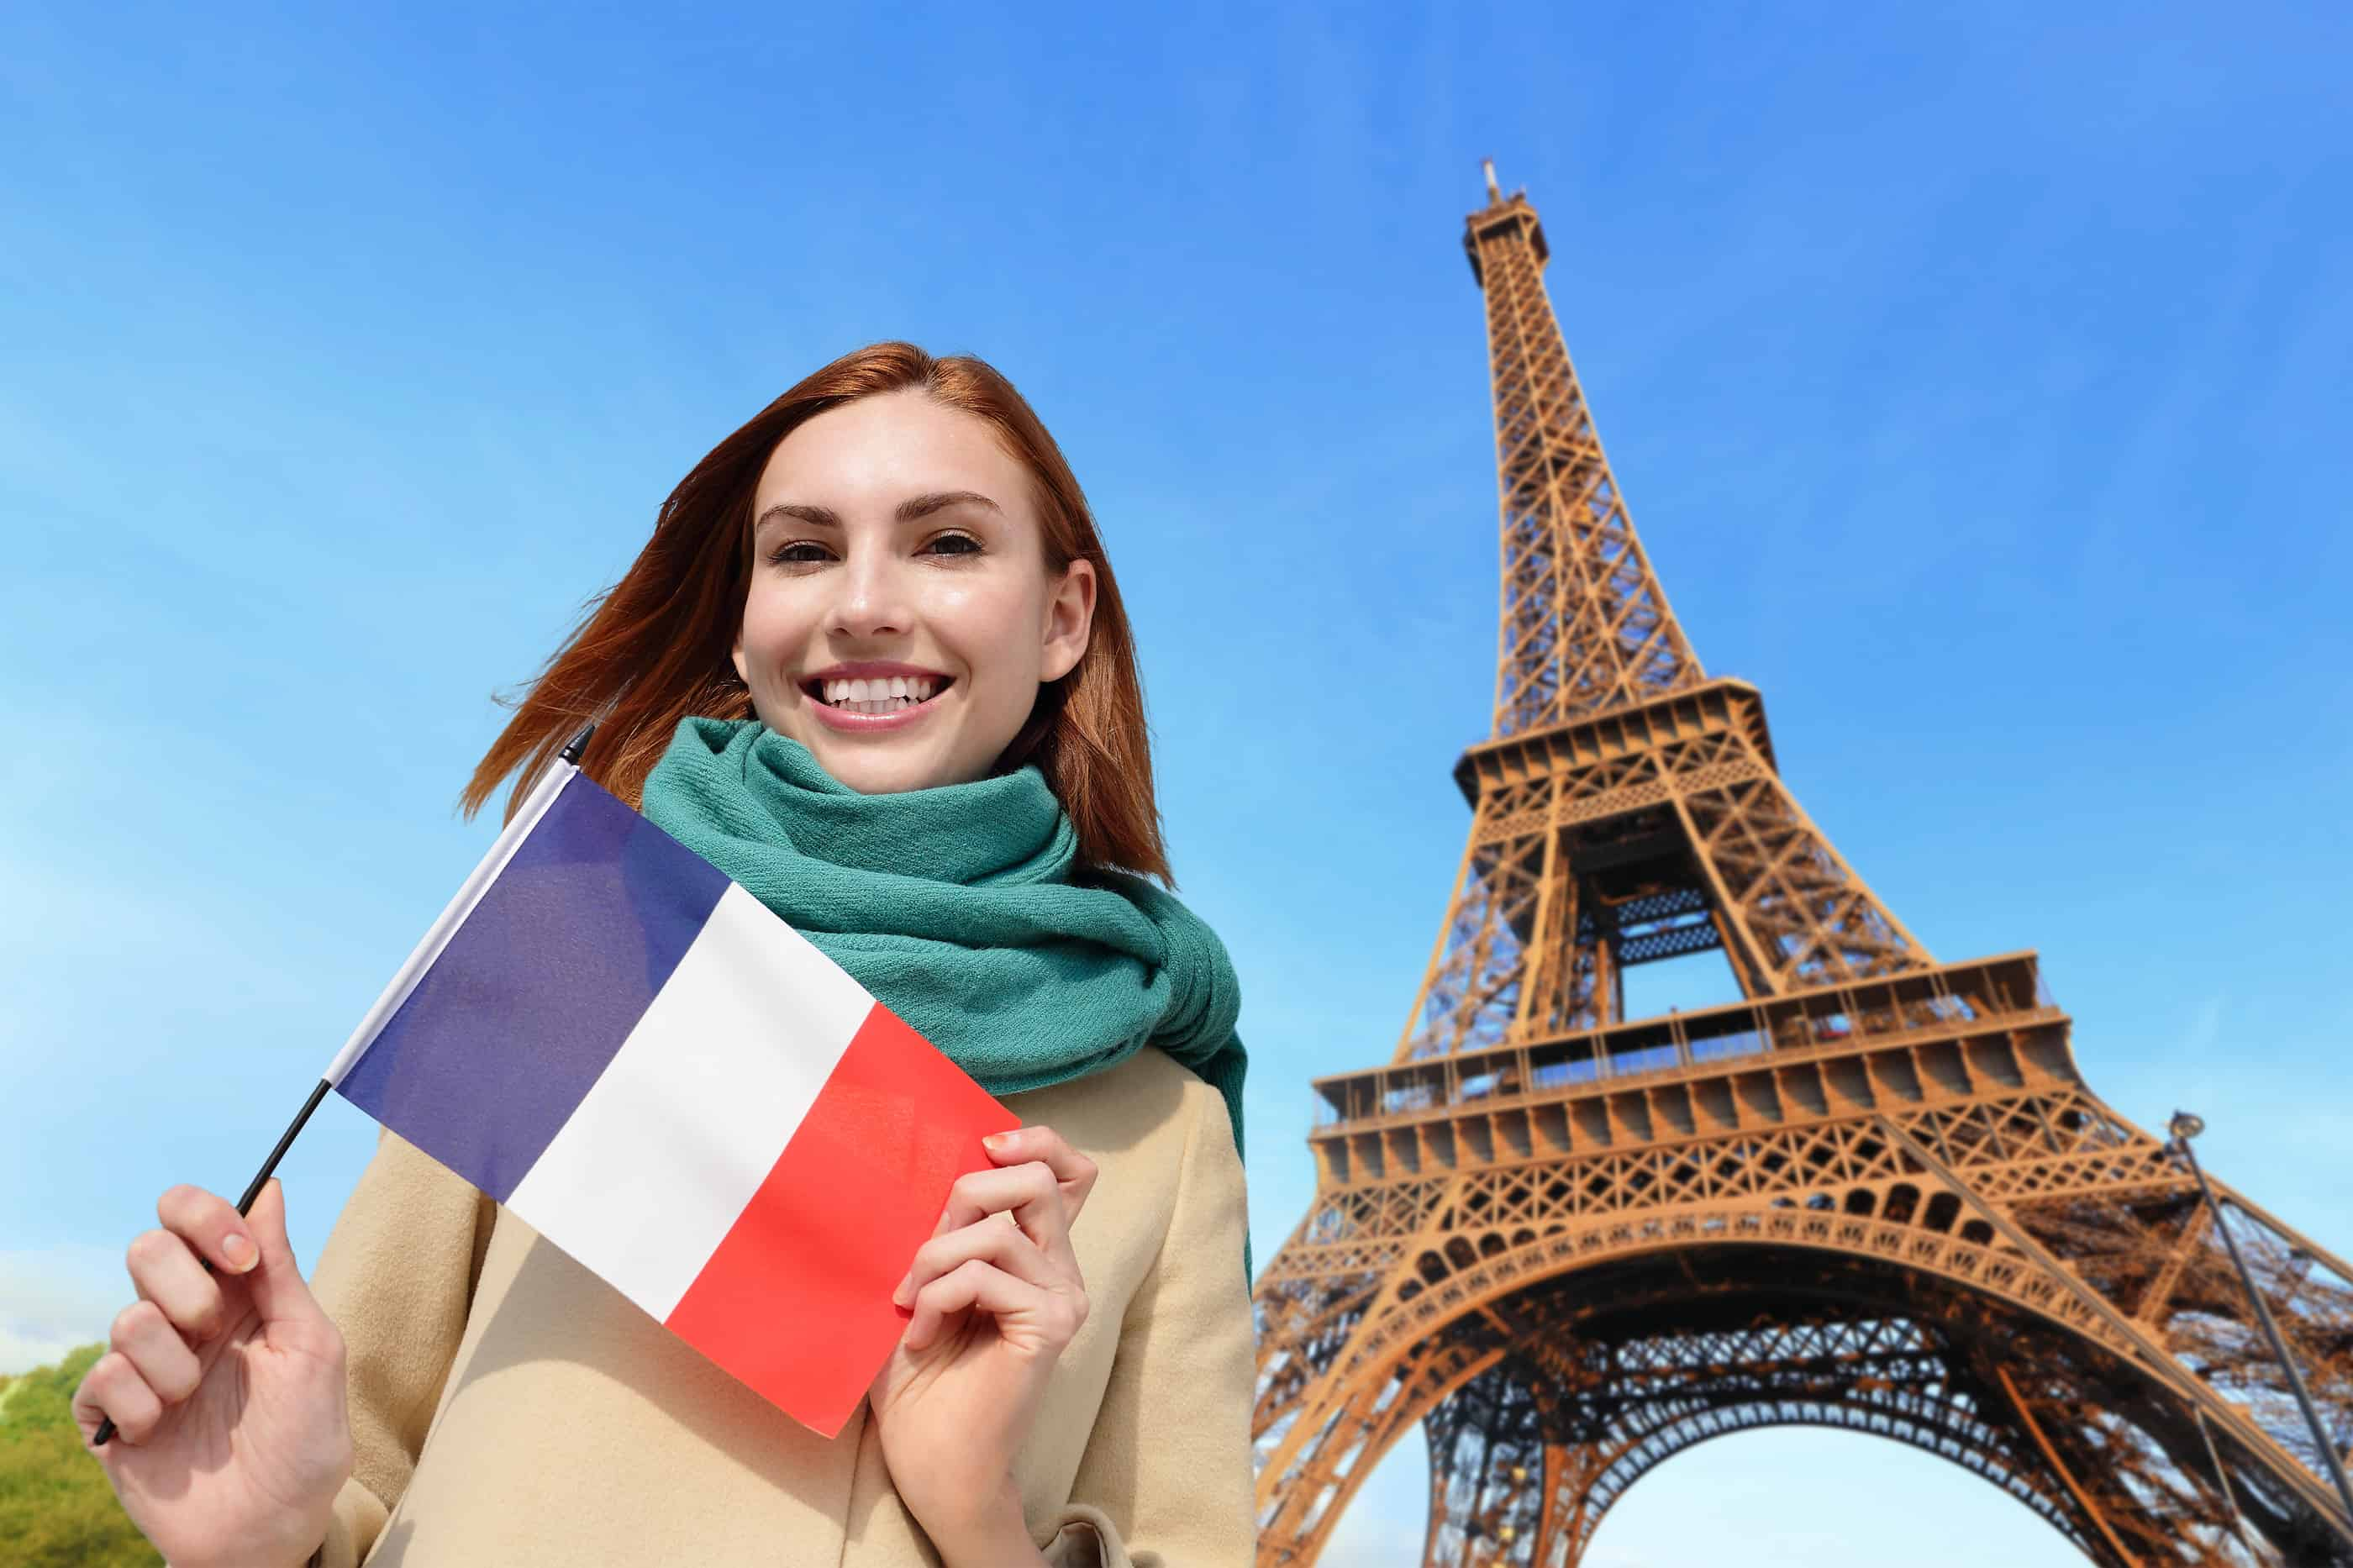 Happy woman travel in Paris with eiffel tower and beautiful blue sky and holding France French flag caucasian beauty